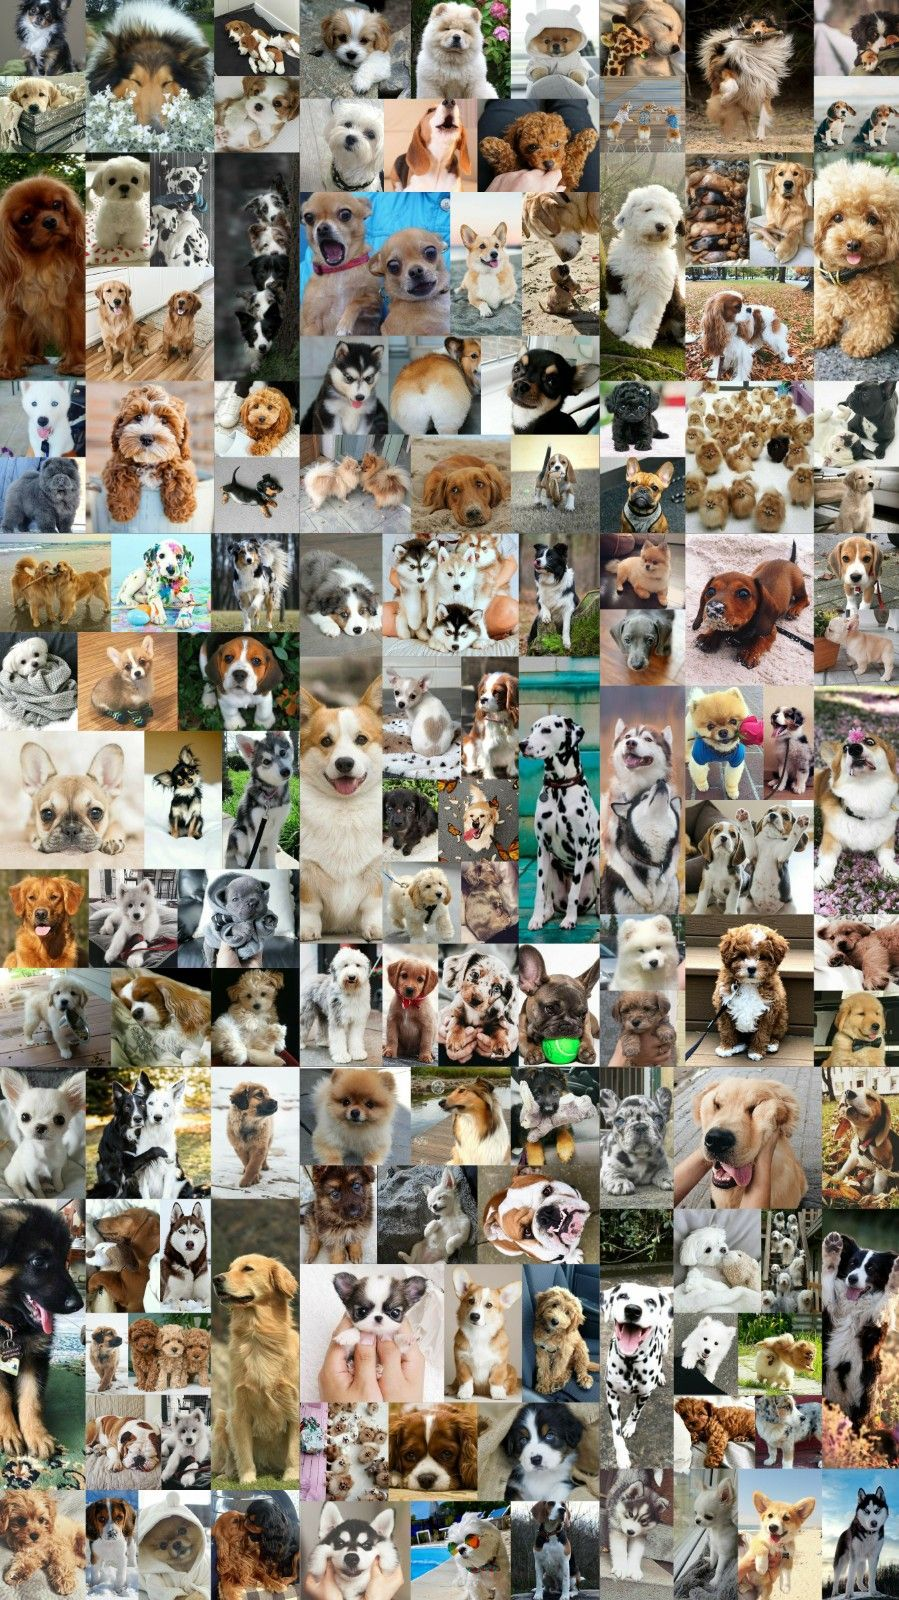 Wallpaper Background Collage Aesthetic Dogs Pets Puppy Puppy Wallpaper Dog Wallpaper Puppies